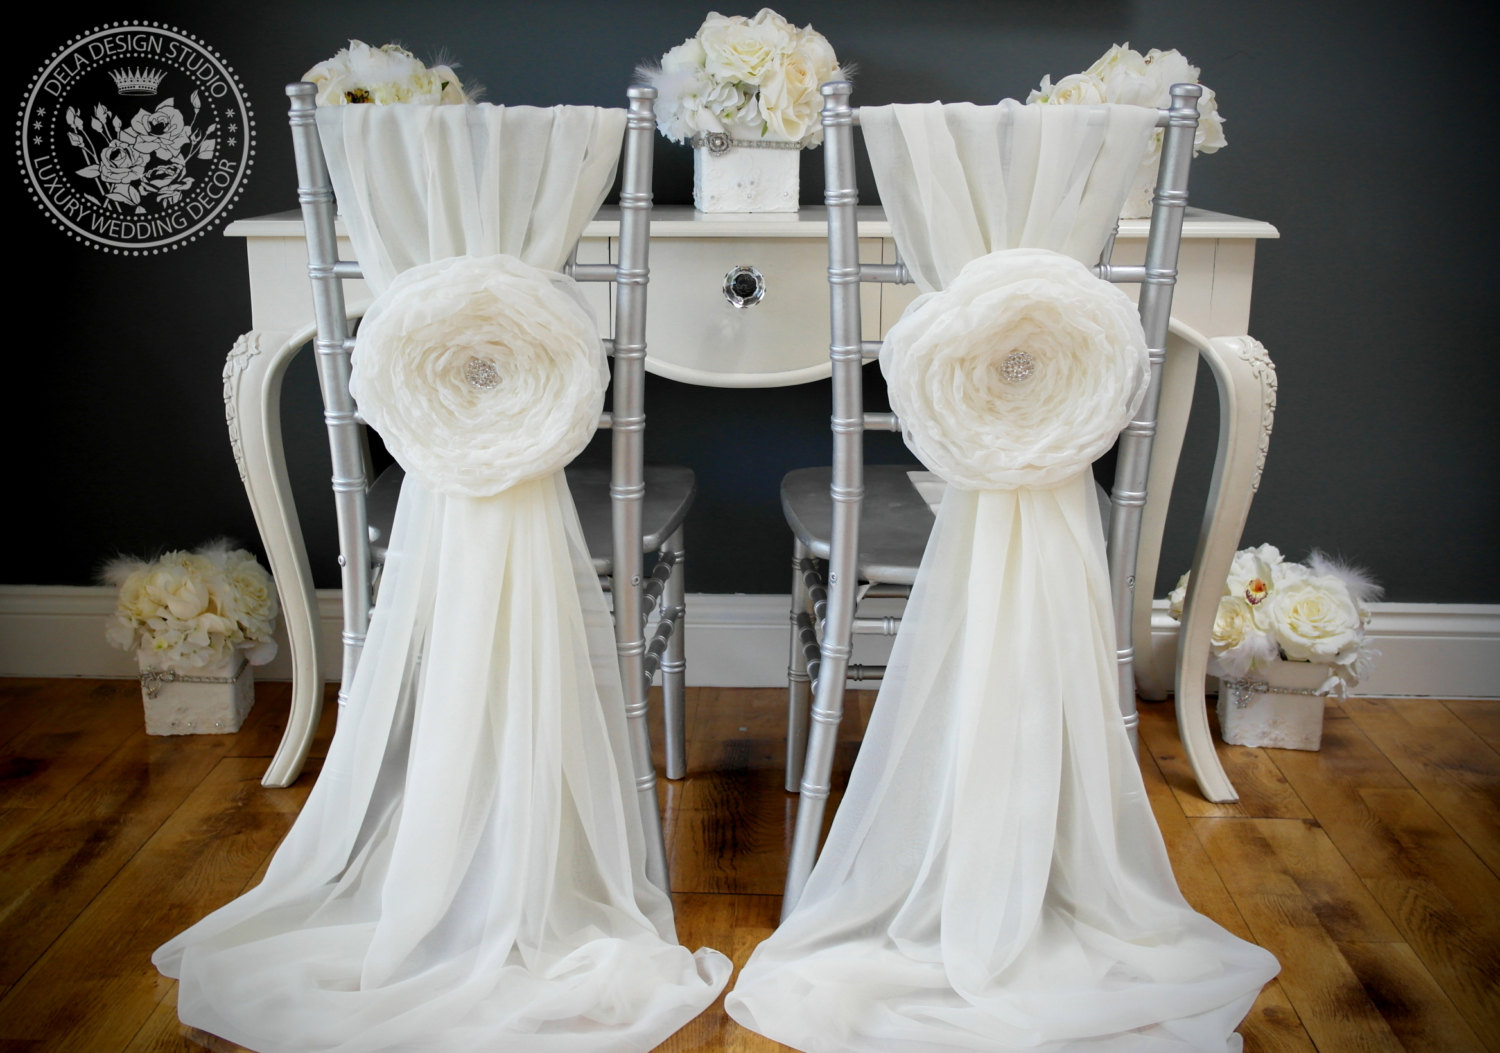 chair covers decorations moroccan chairs for sale vintage glam white chiffon receptiondiy